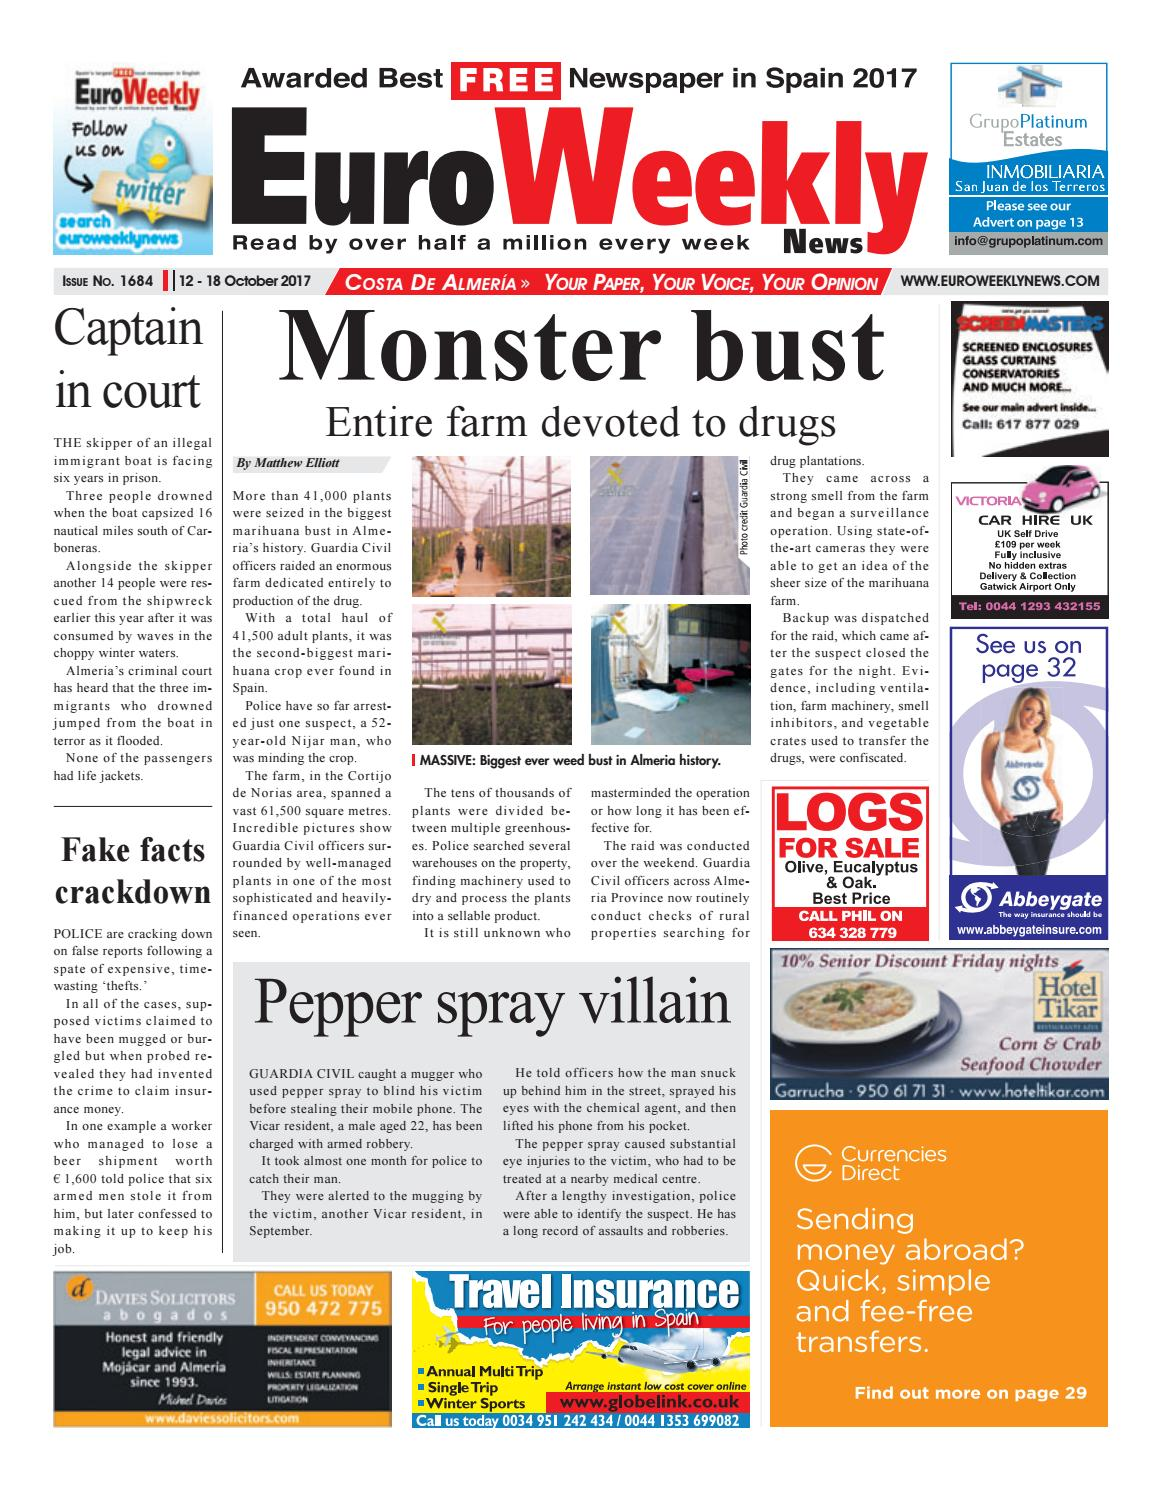 Euro Weekly News - Costa de Almeria 12 – 18 October 2017